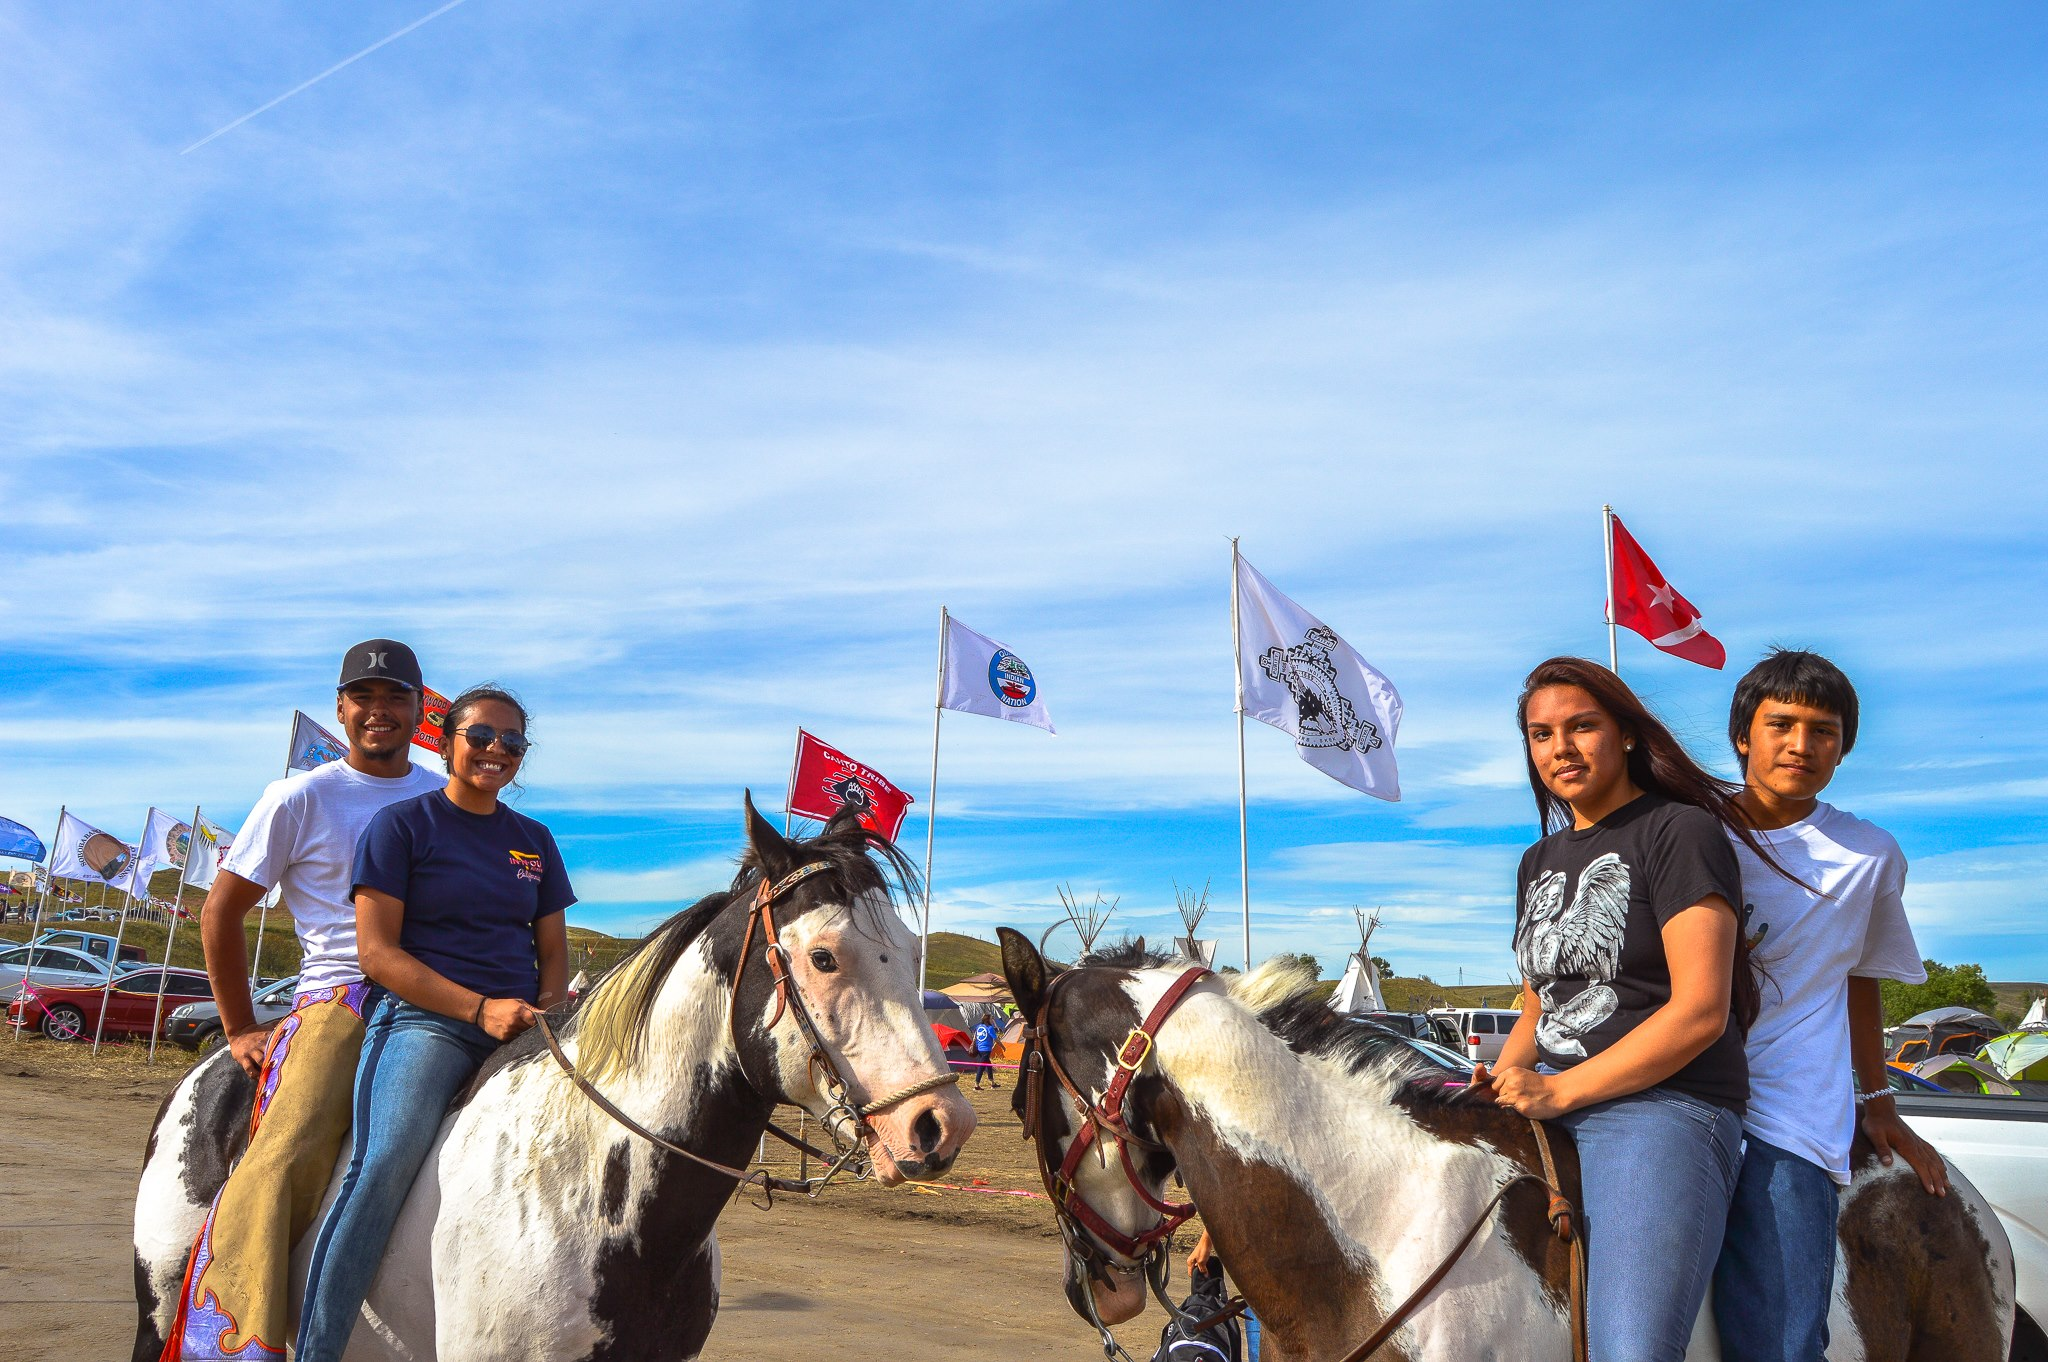 Young water protectors from Iowa made the trip to Sacred Stone Camp to stand with Standing Rock Sioux Tribe and all the people who oppose the Dakota Access Pipeline. Sept. 12, 2016. (Photo by Rob Wilson for Bold Alliance)